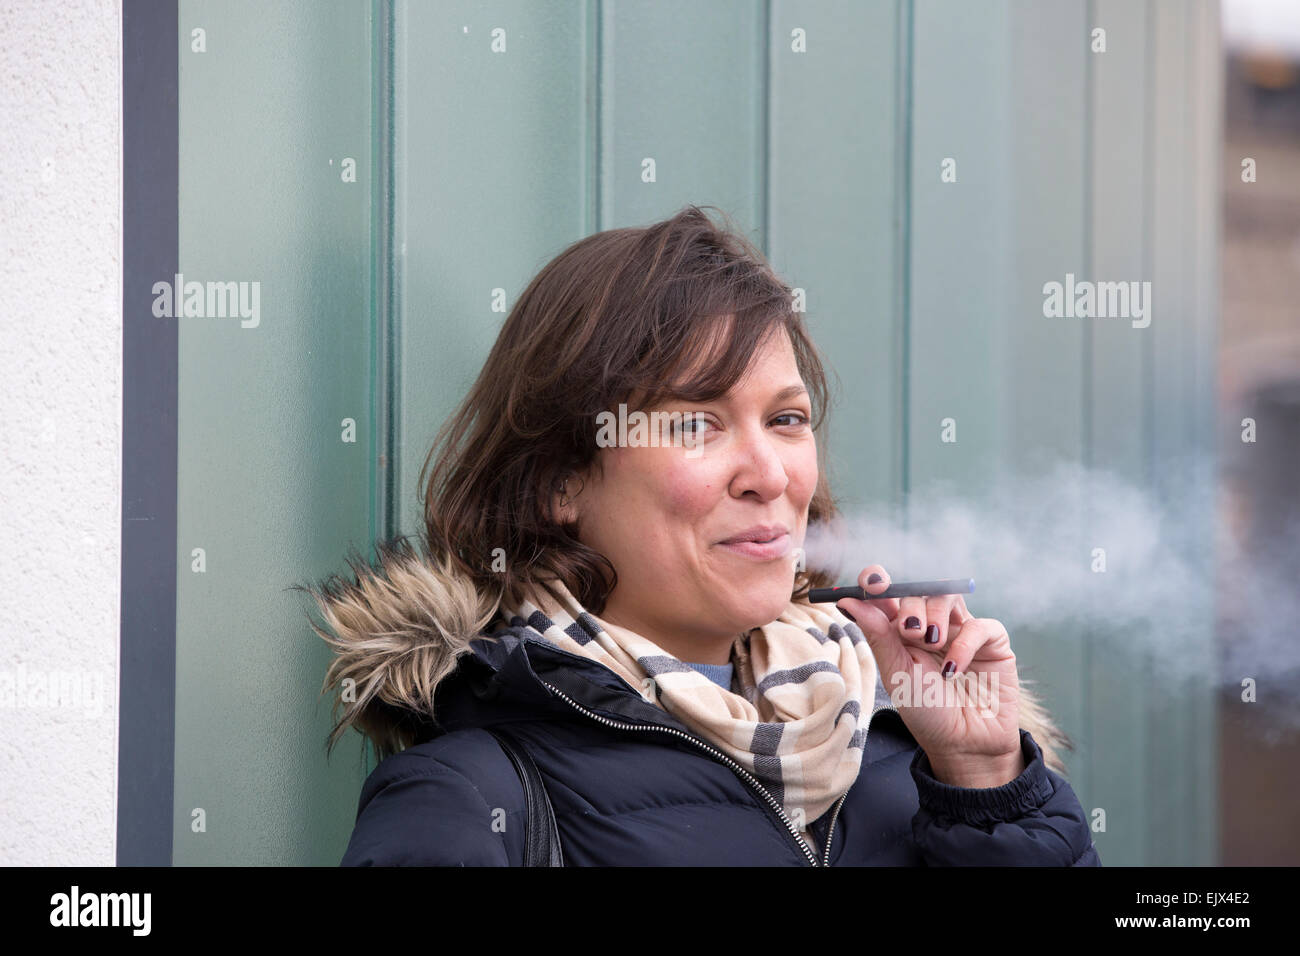 Woman smoking an e-cigarette outside an office building, UK - Stock Image